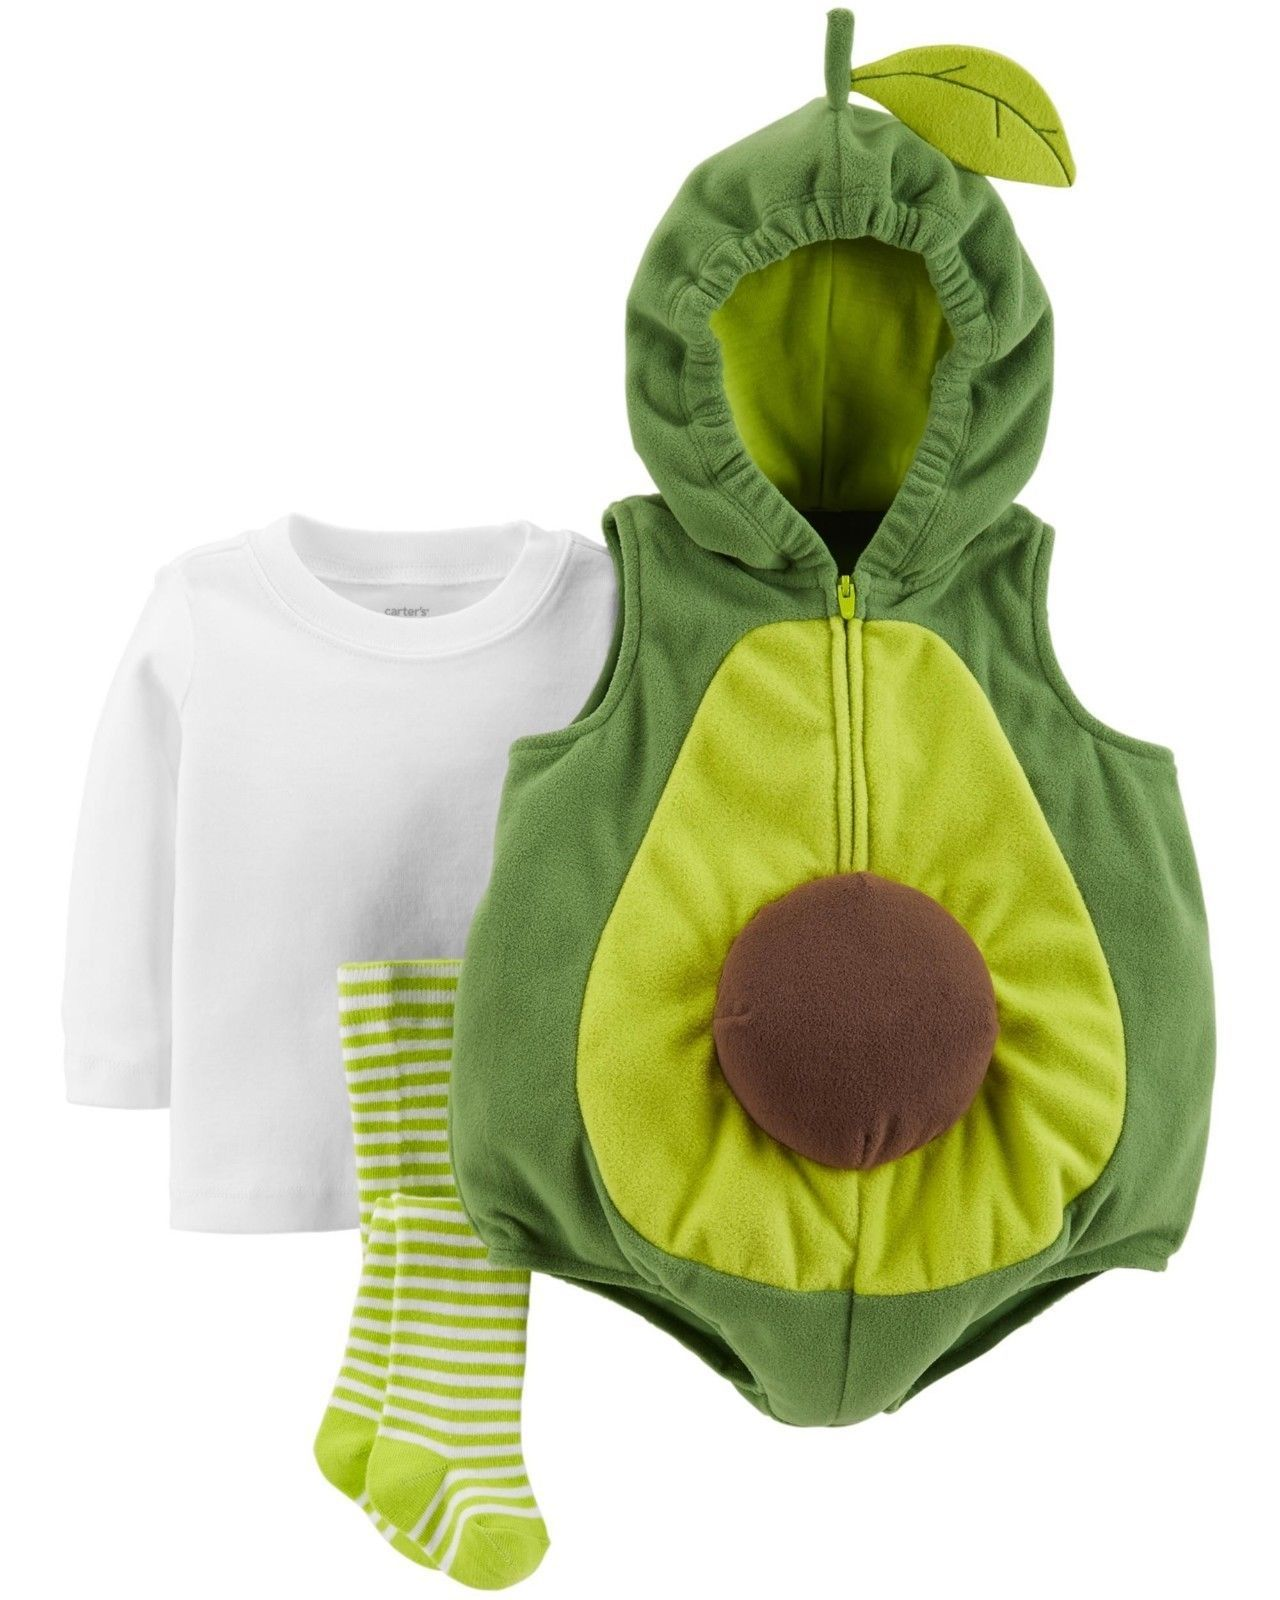 NEW NWT Carters Avocado Halloween Costume Boy or Girl 12 or 18 Months